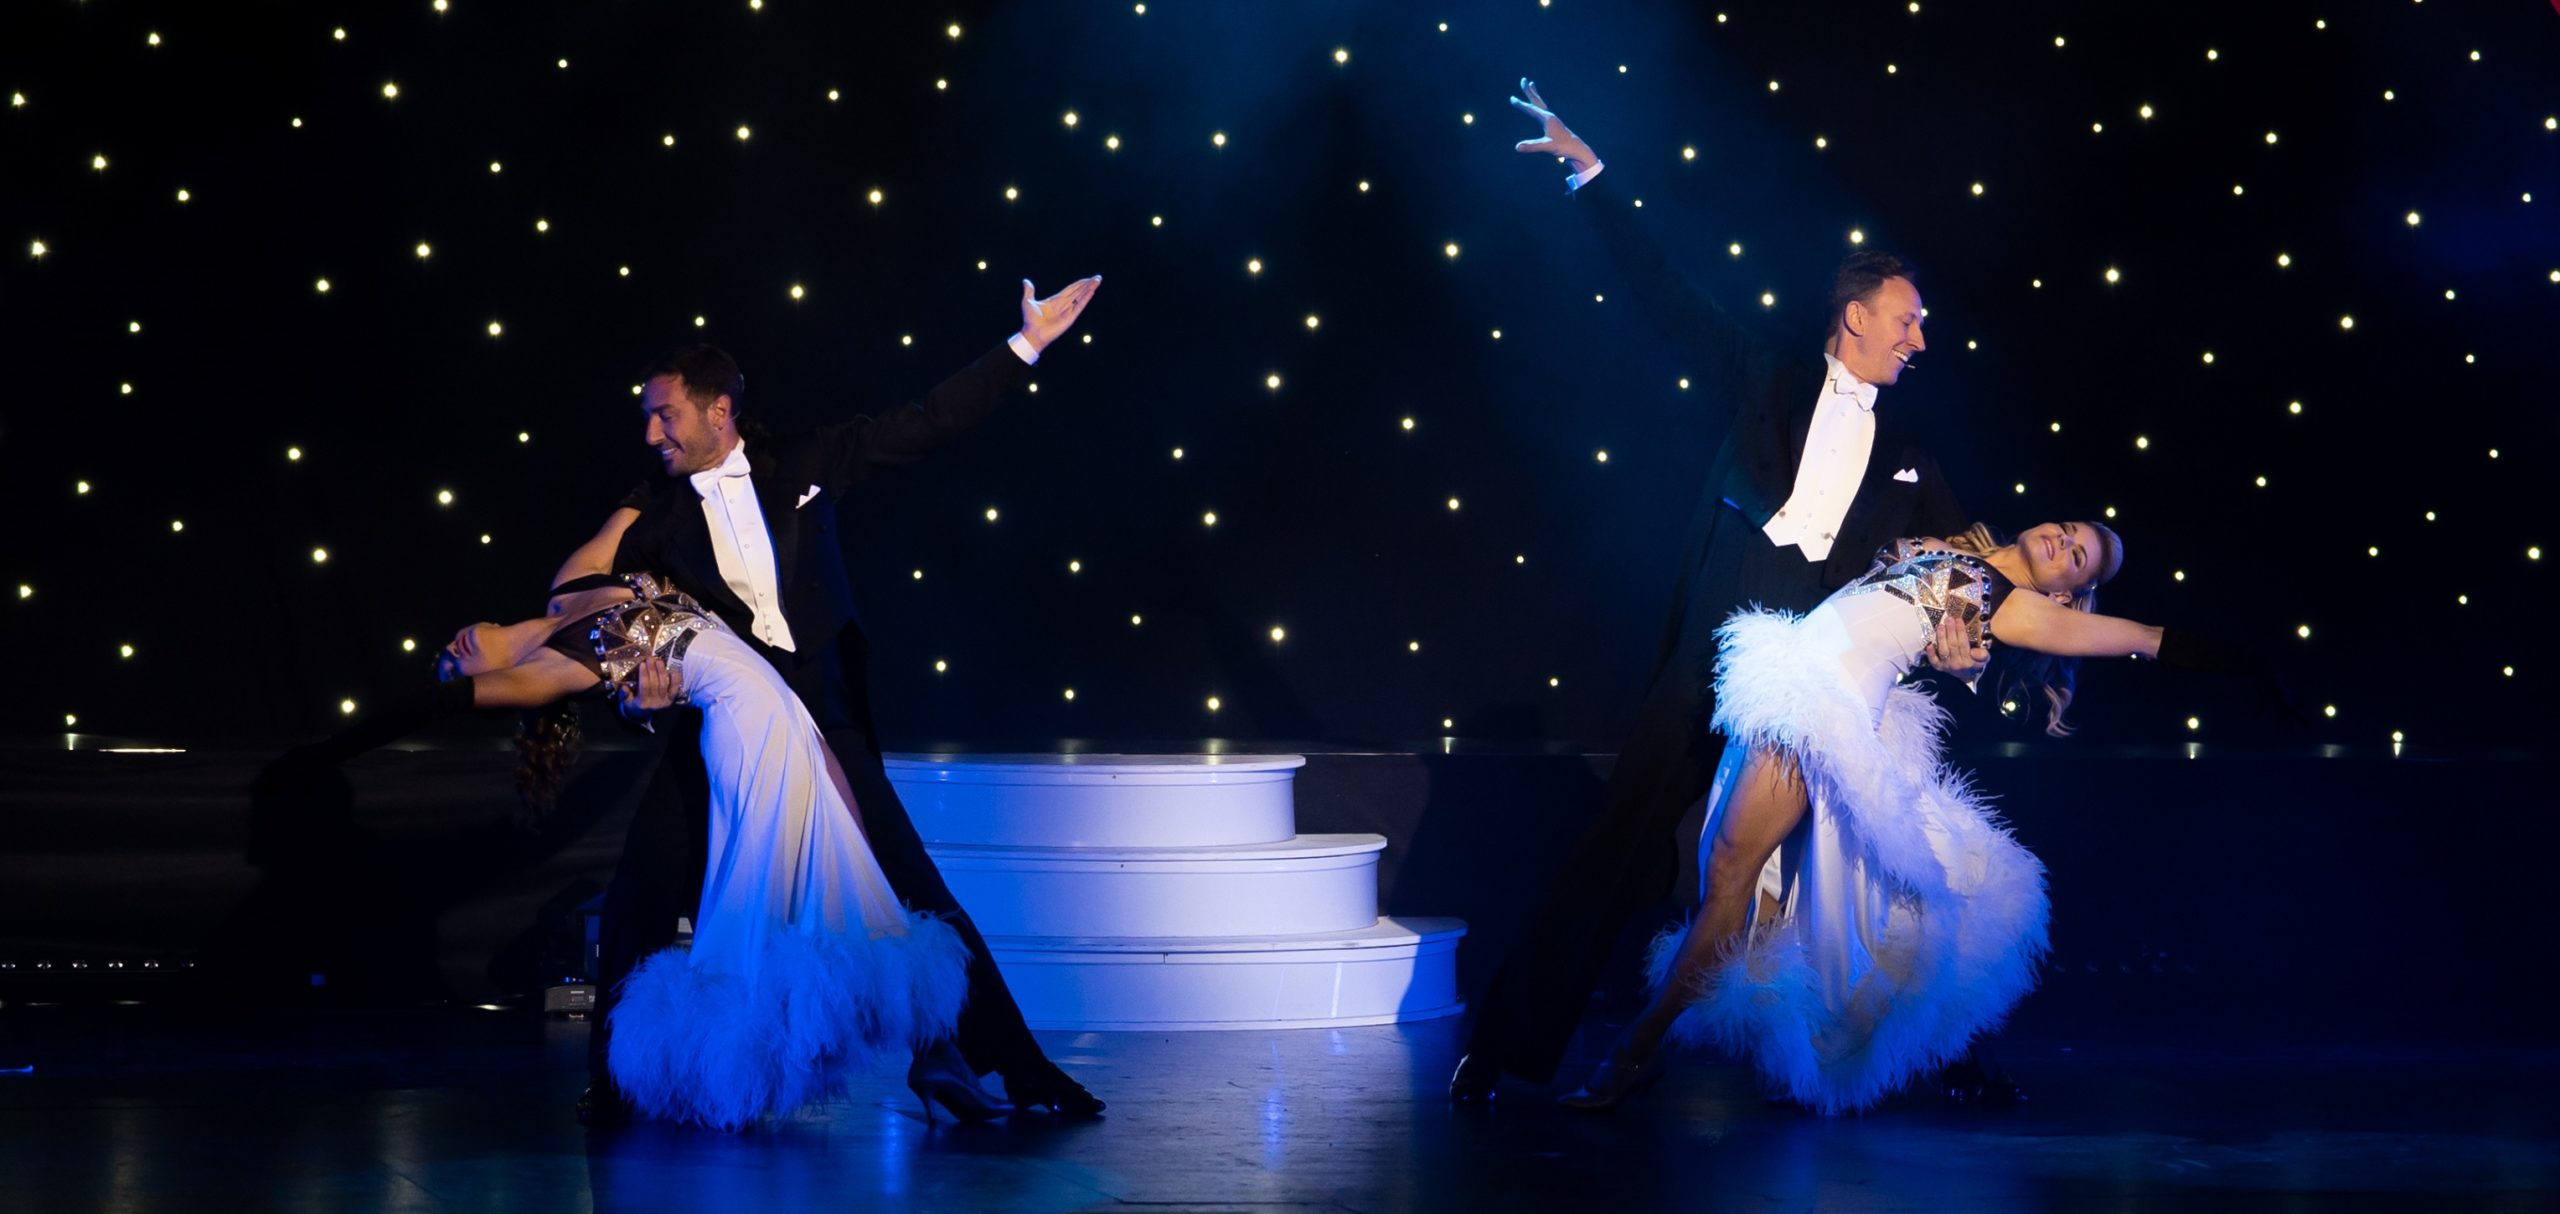 Tickets Now Available For A New Season Of Shows At Gala Durham